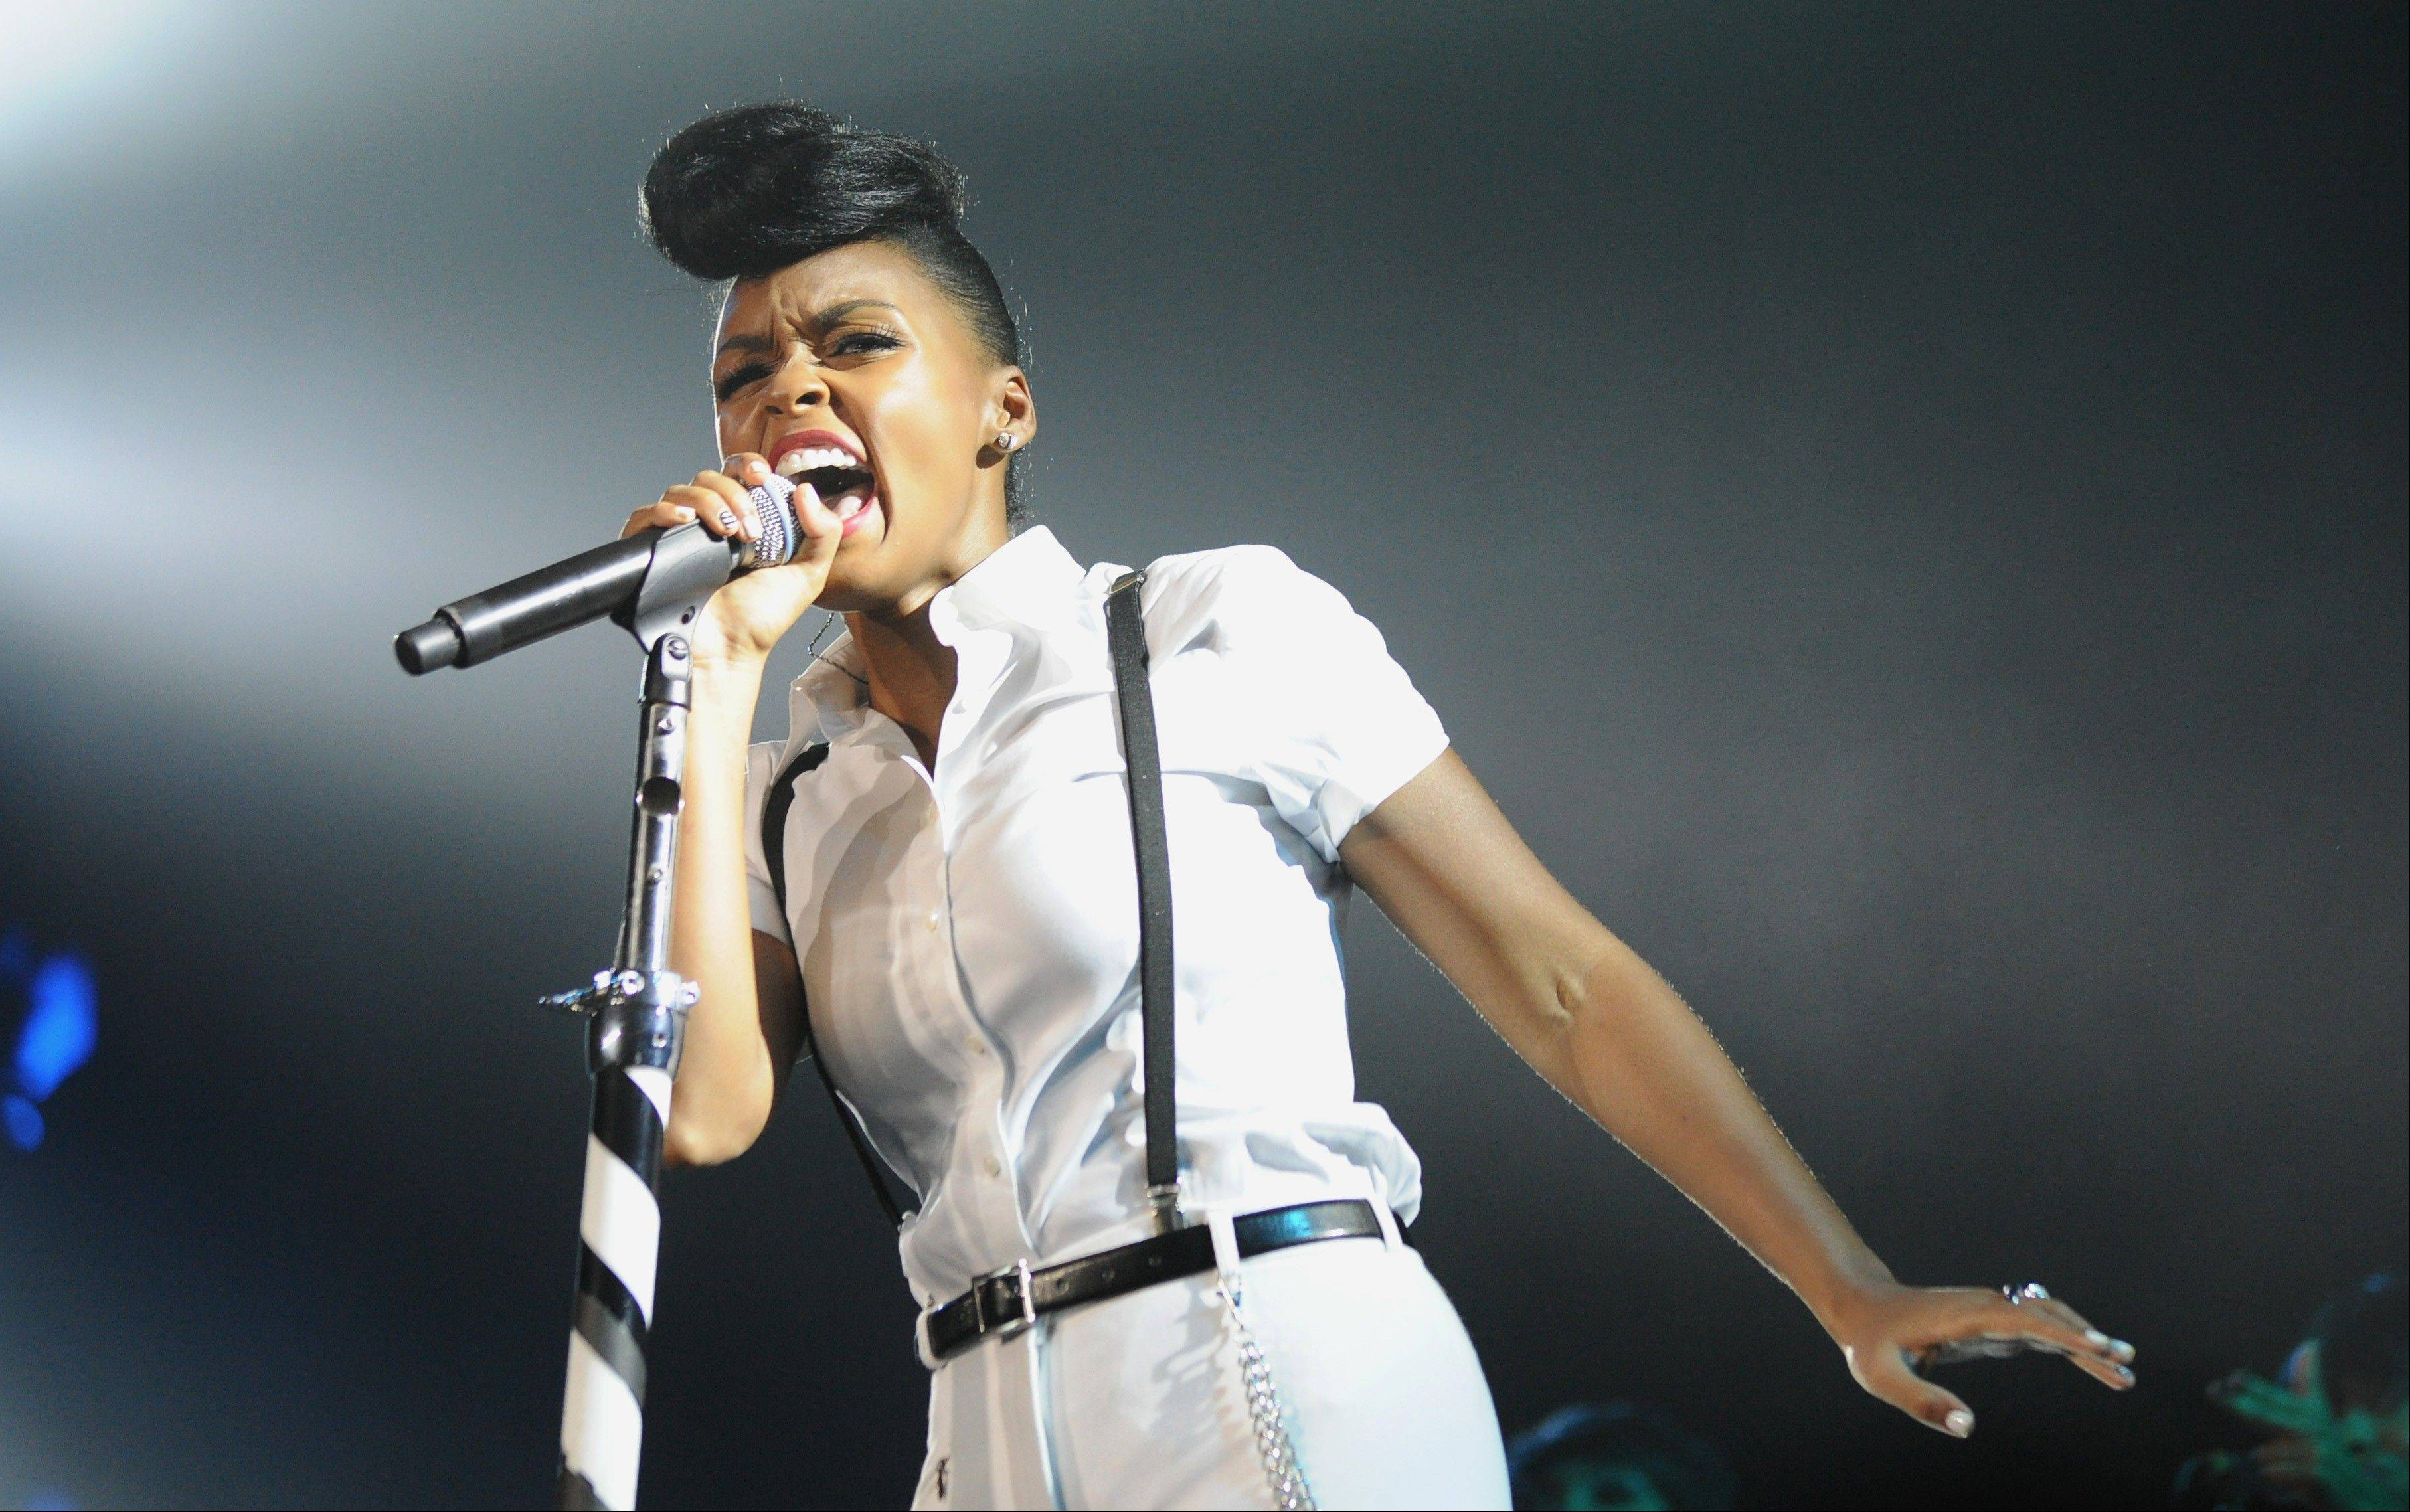 Janelle Monae will sing at Rebecca Minkoff's show at Lincoln Center on Friday during New York Fashion Week.